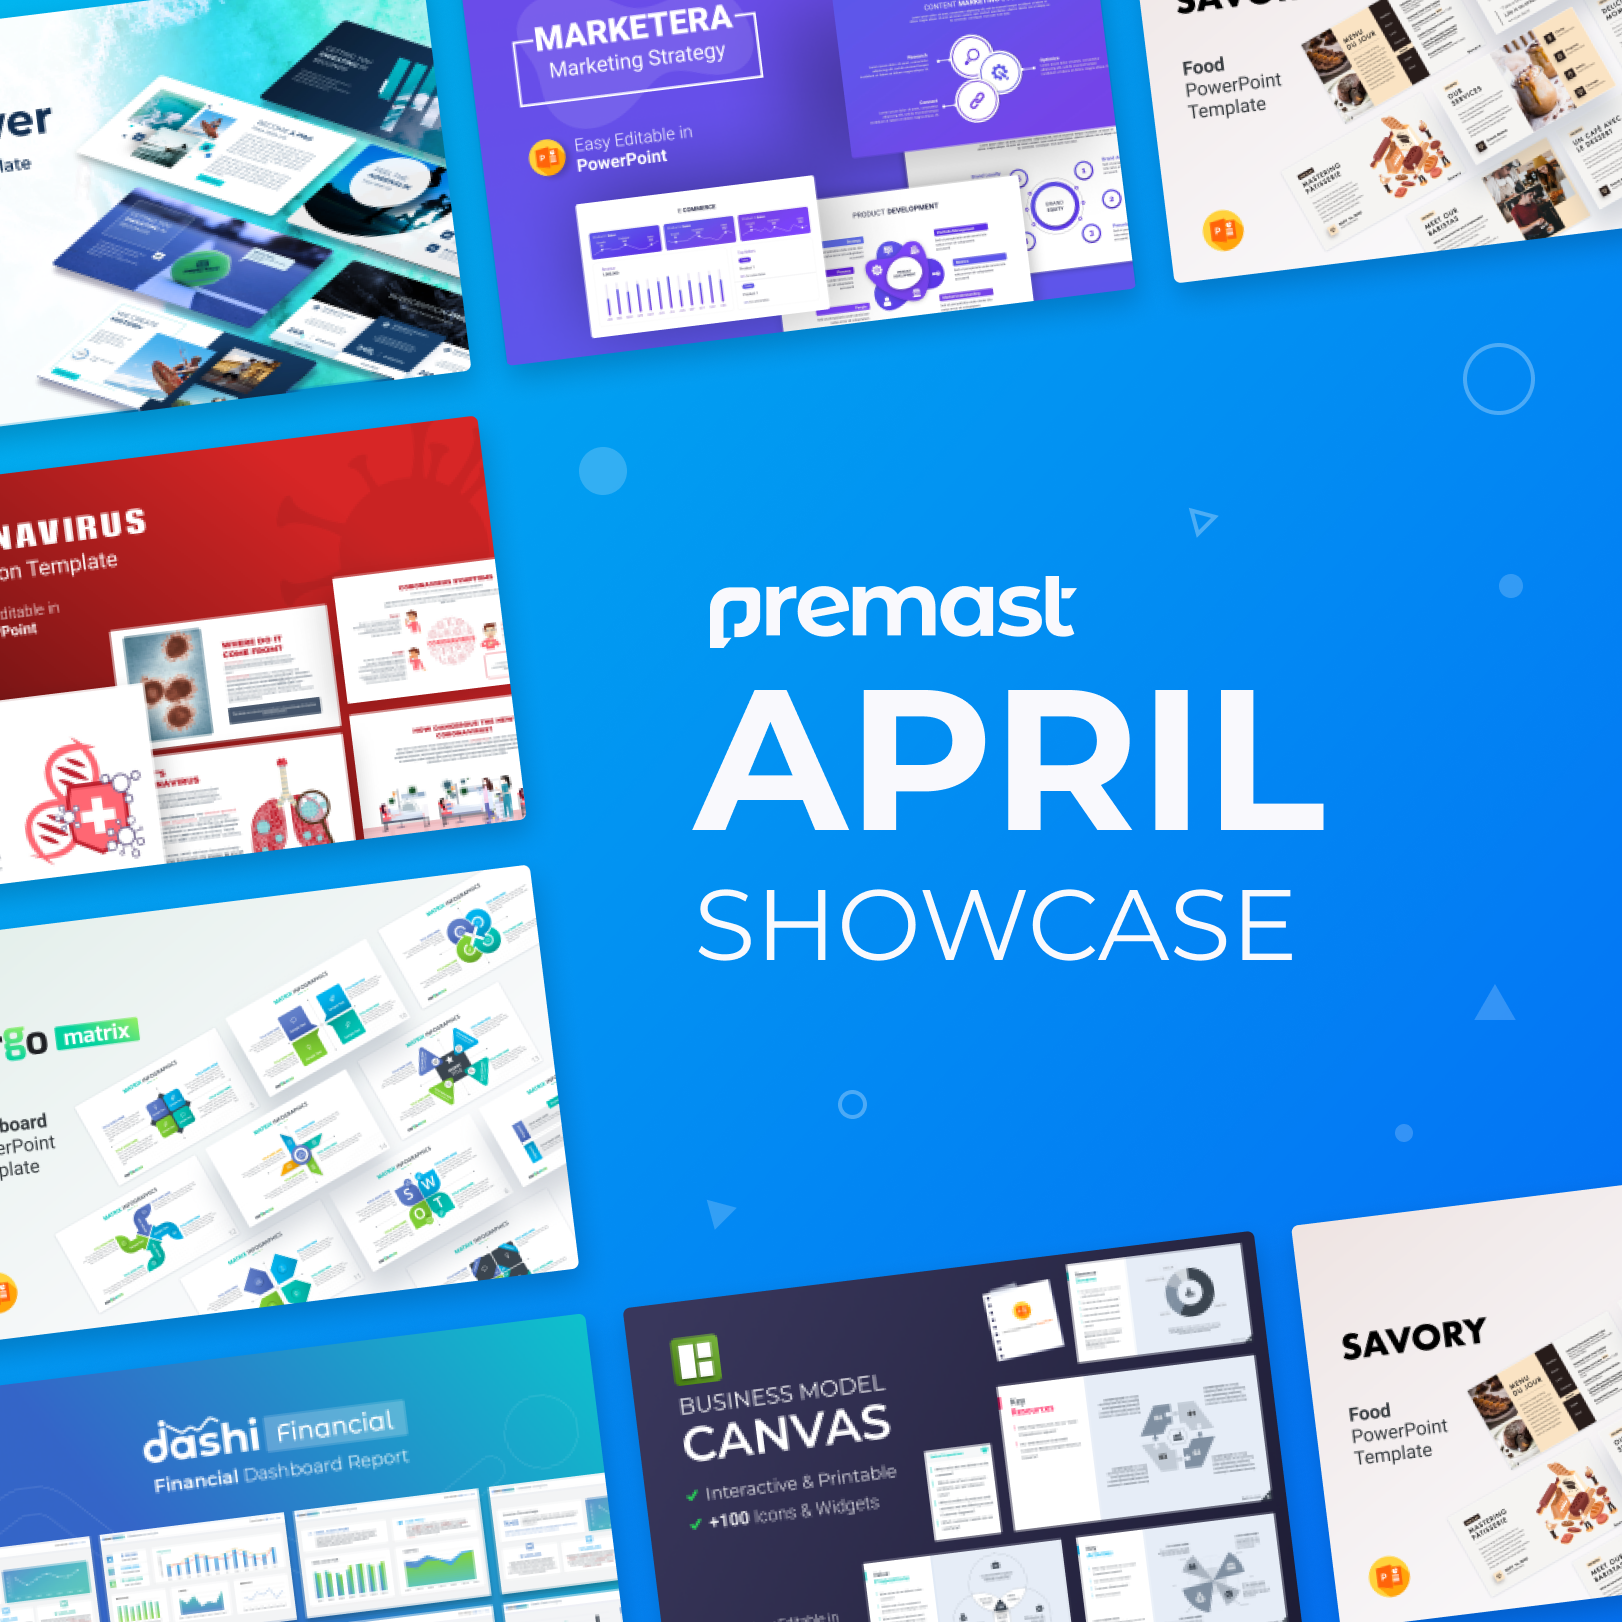 April 2020 Showcase: Top PowerPoint Presentation Templates